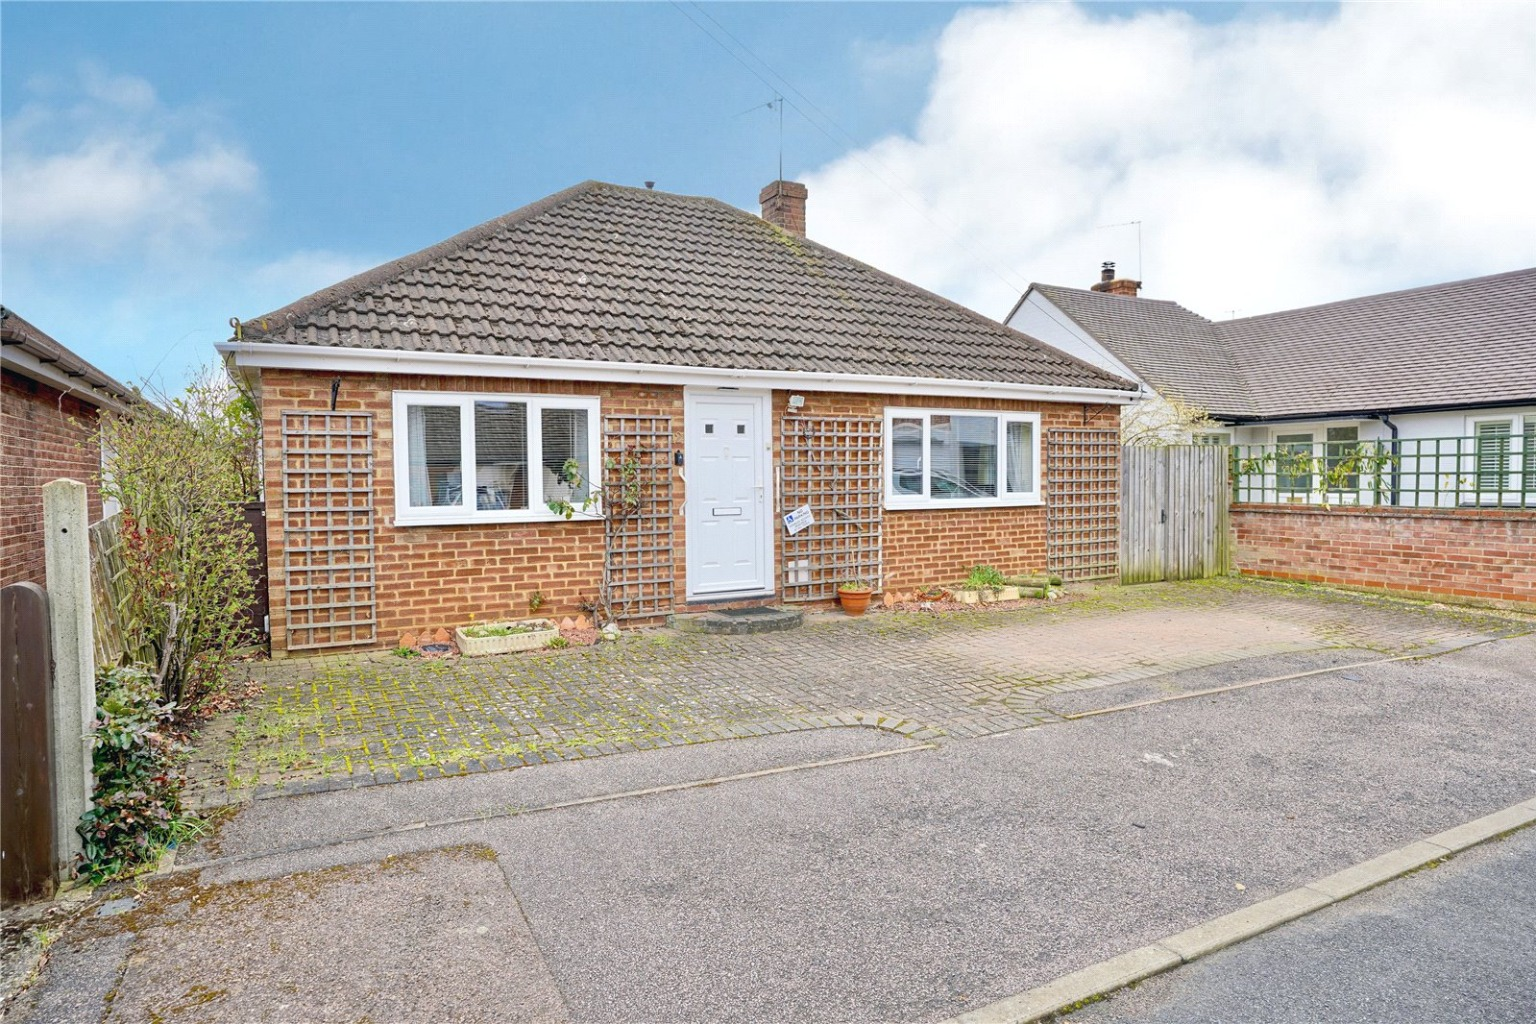 2 bed  for sale in Parkway, St. Neots, PE19